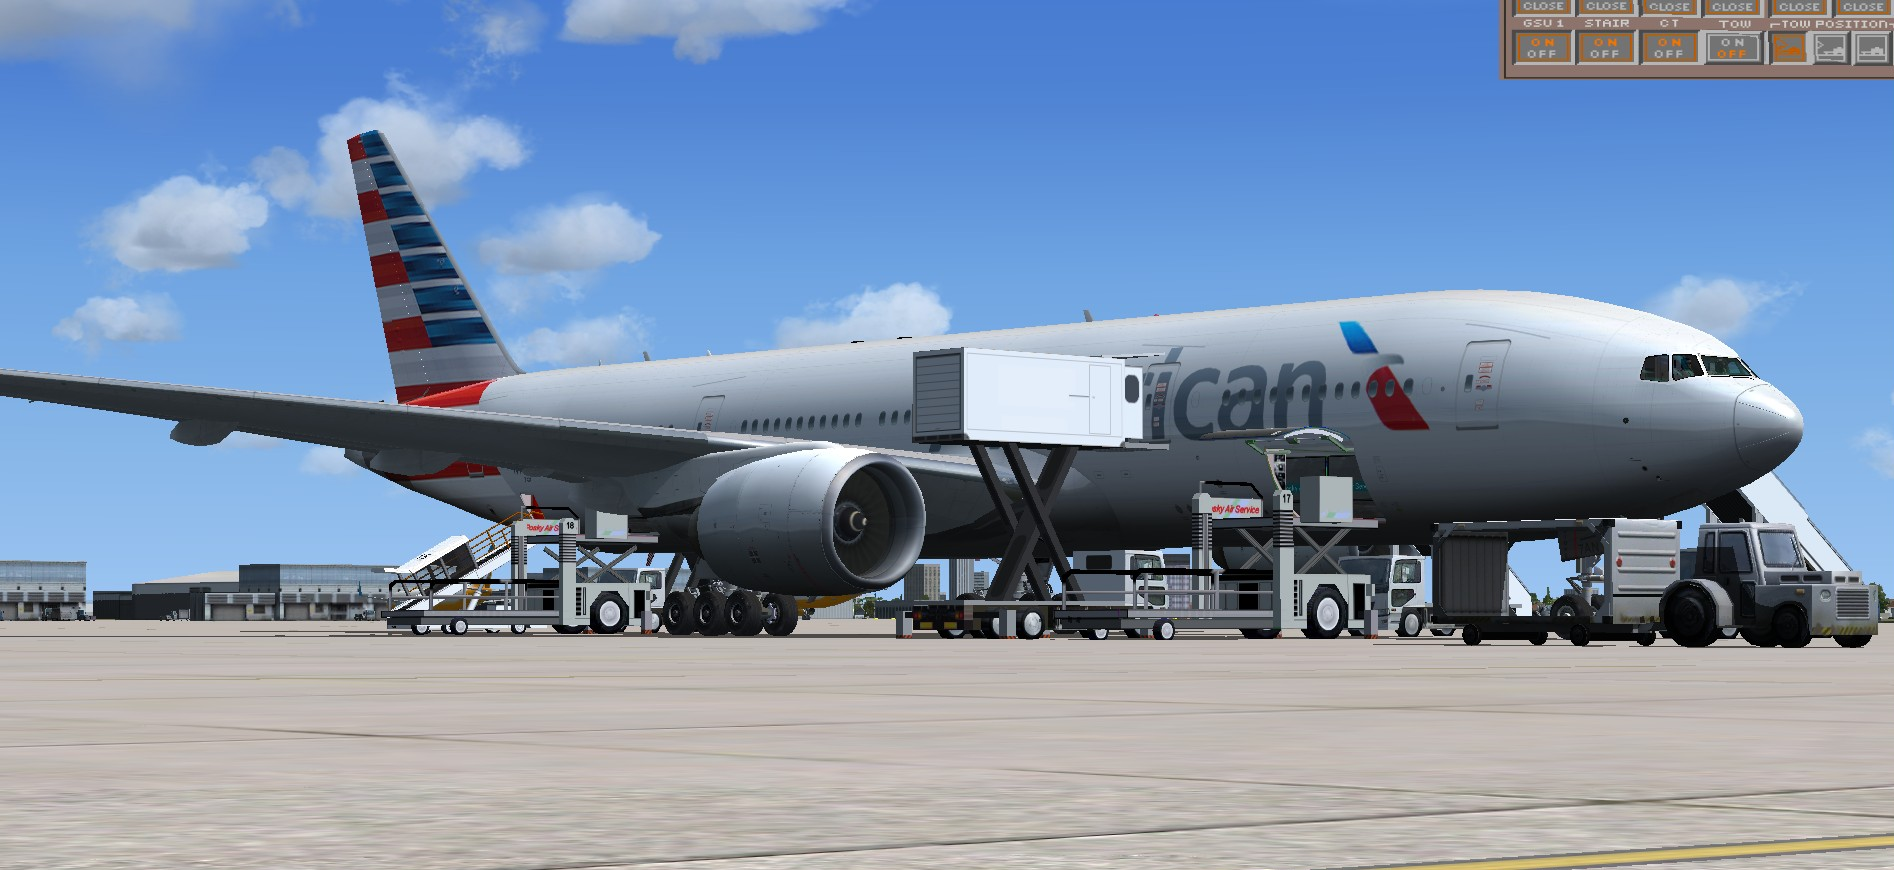 fs-freeware net - FSX American Airlines Boeing 777-200 new livery